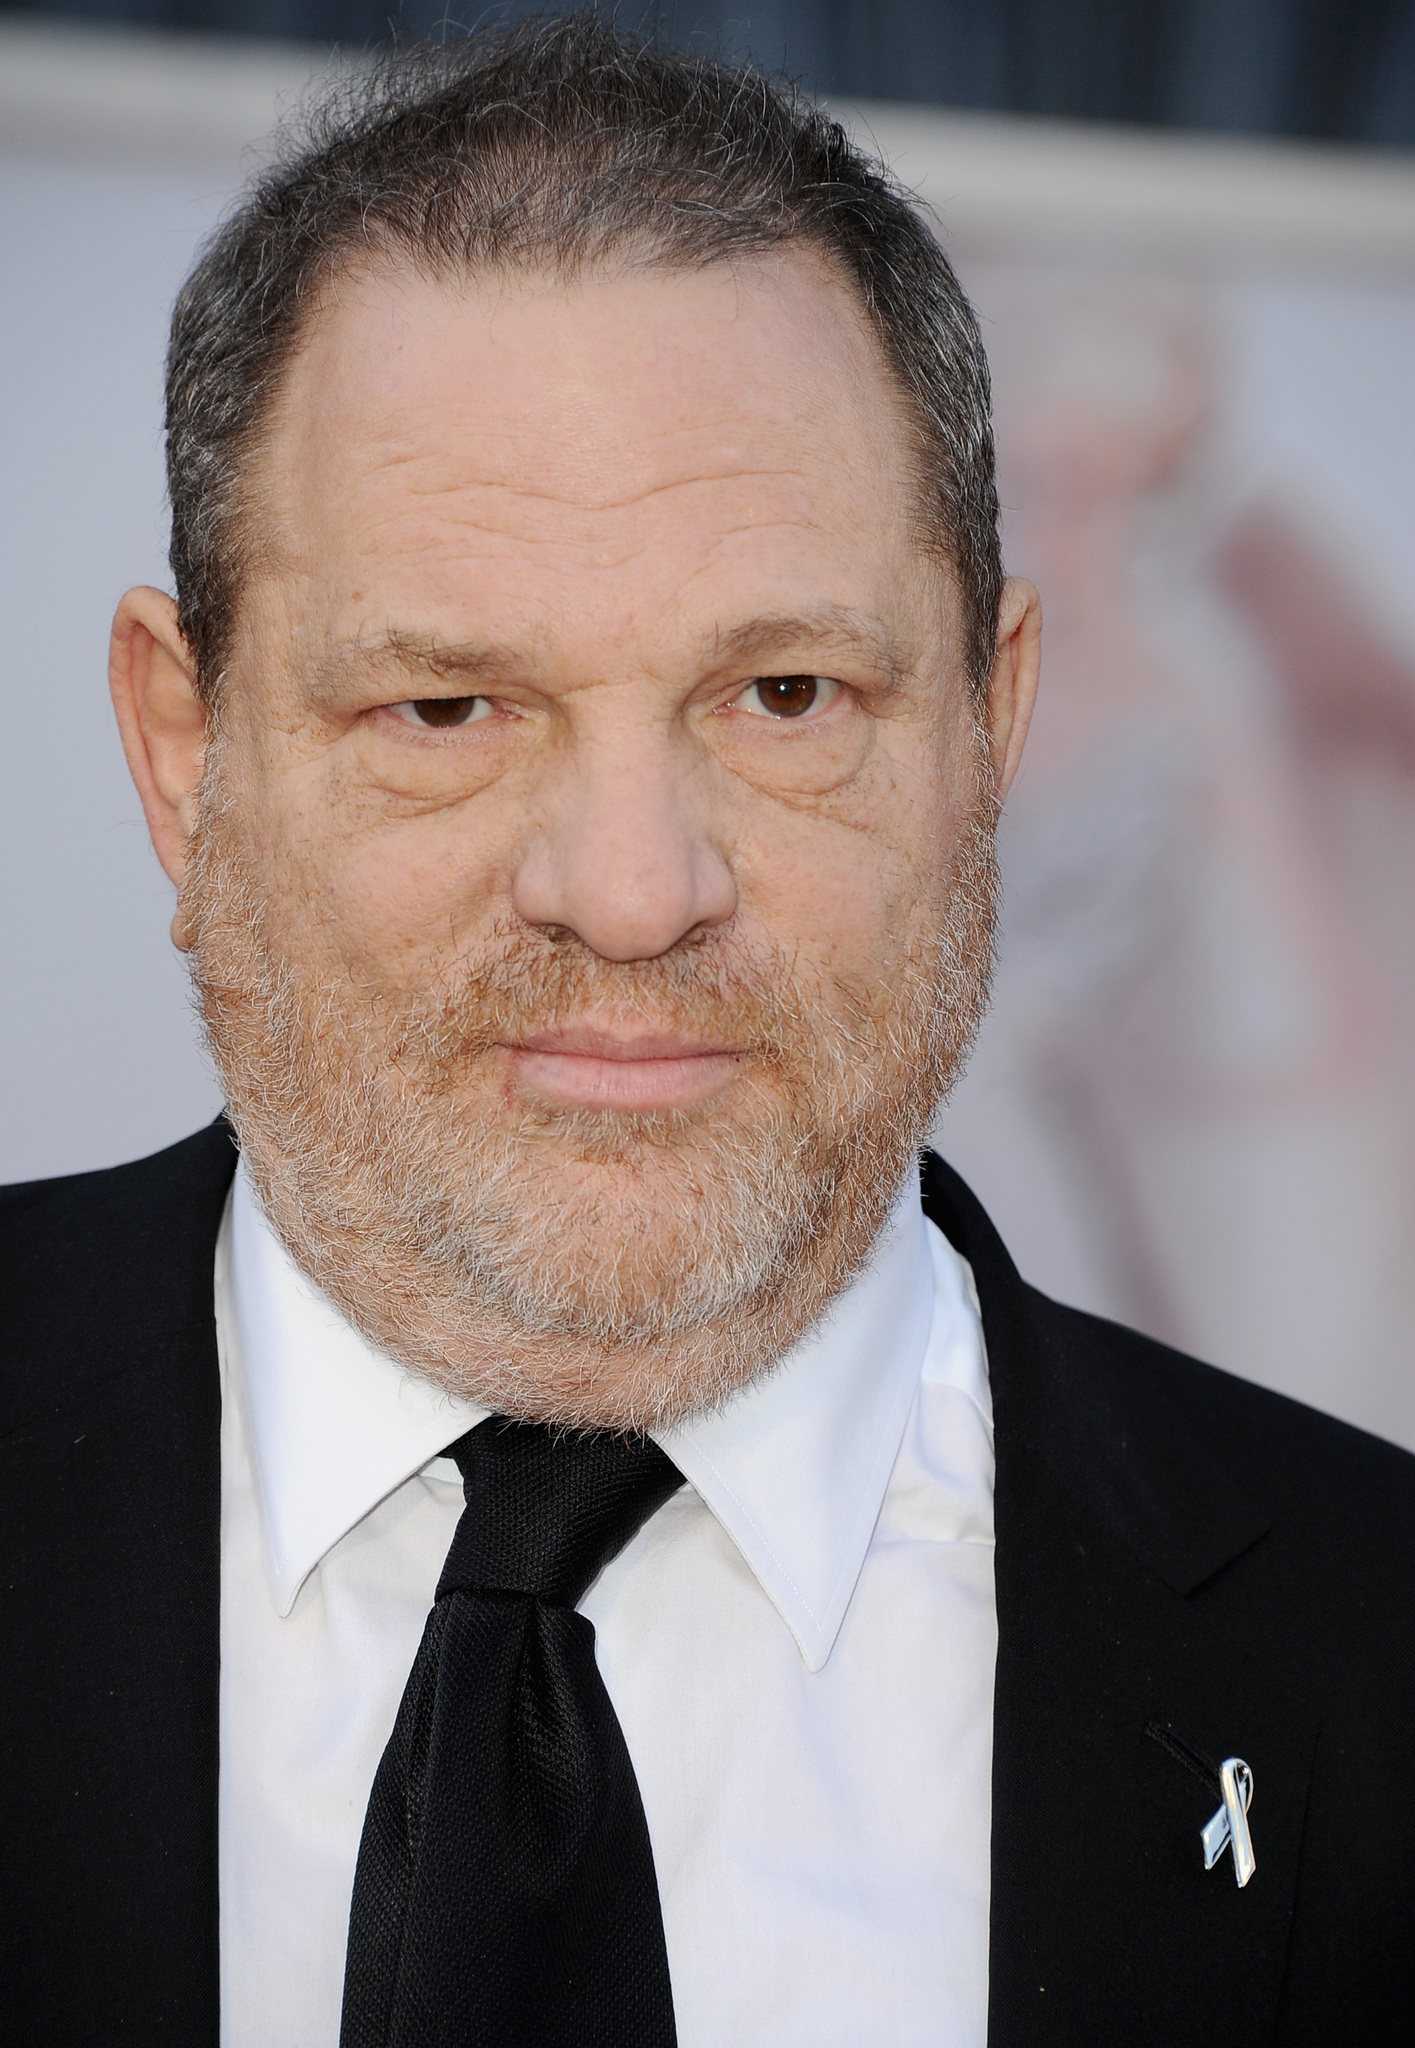 Harvey Weinstein ˈ w aɪ n s t iː n born March 19 1952 is an American former film producer He and his brother Bob Weinstein cofounded the entertainment